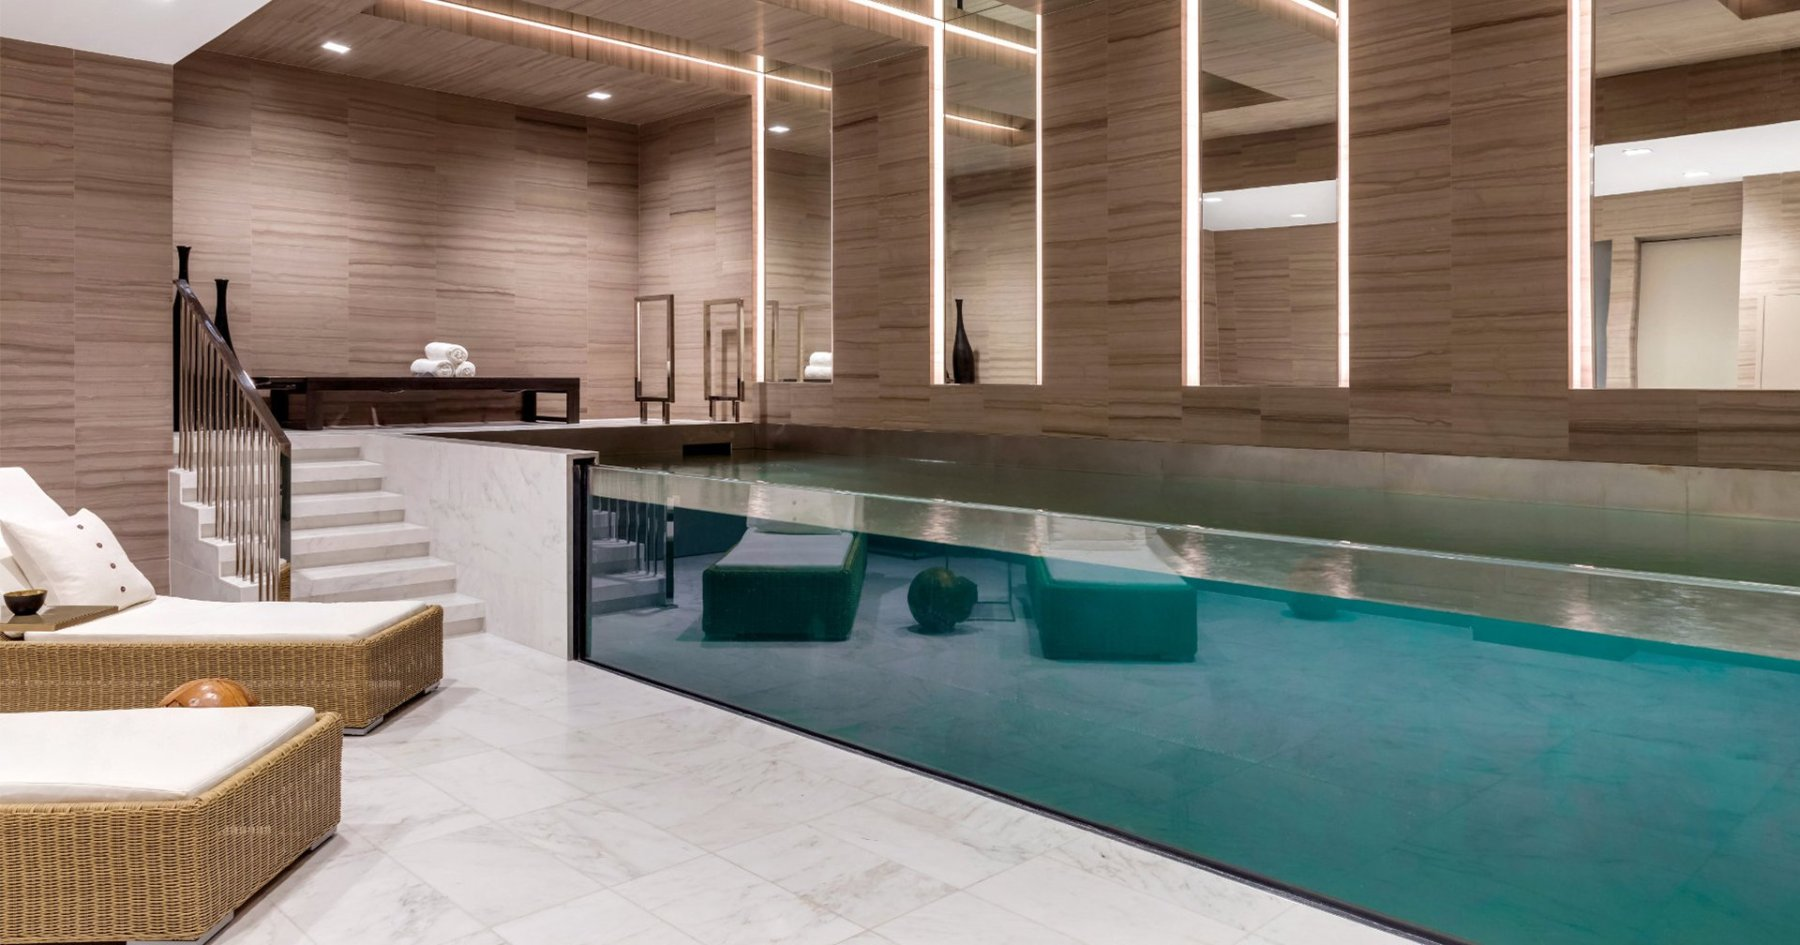 The Listings: Swimming Pools Edition